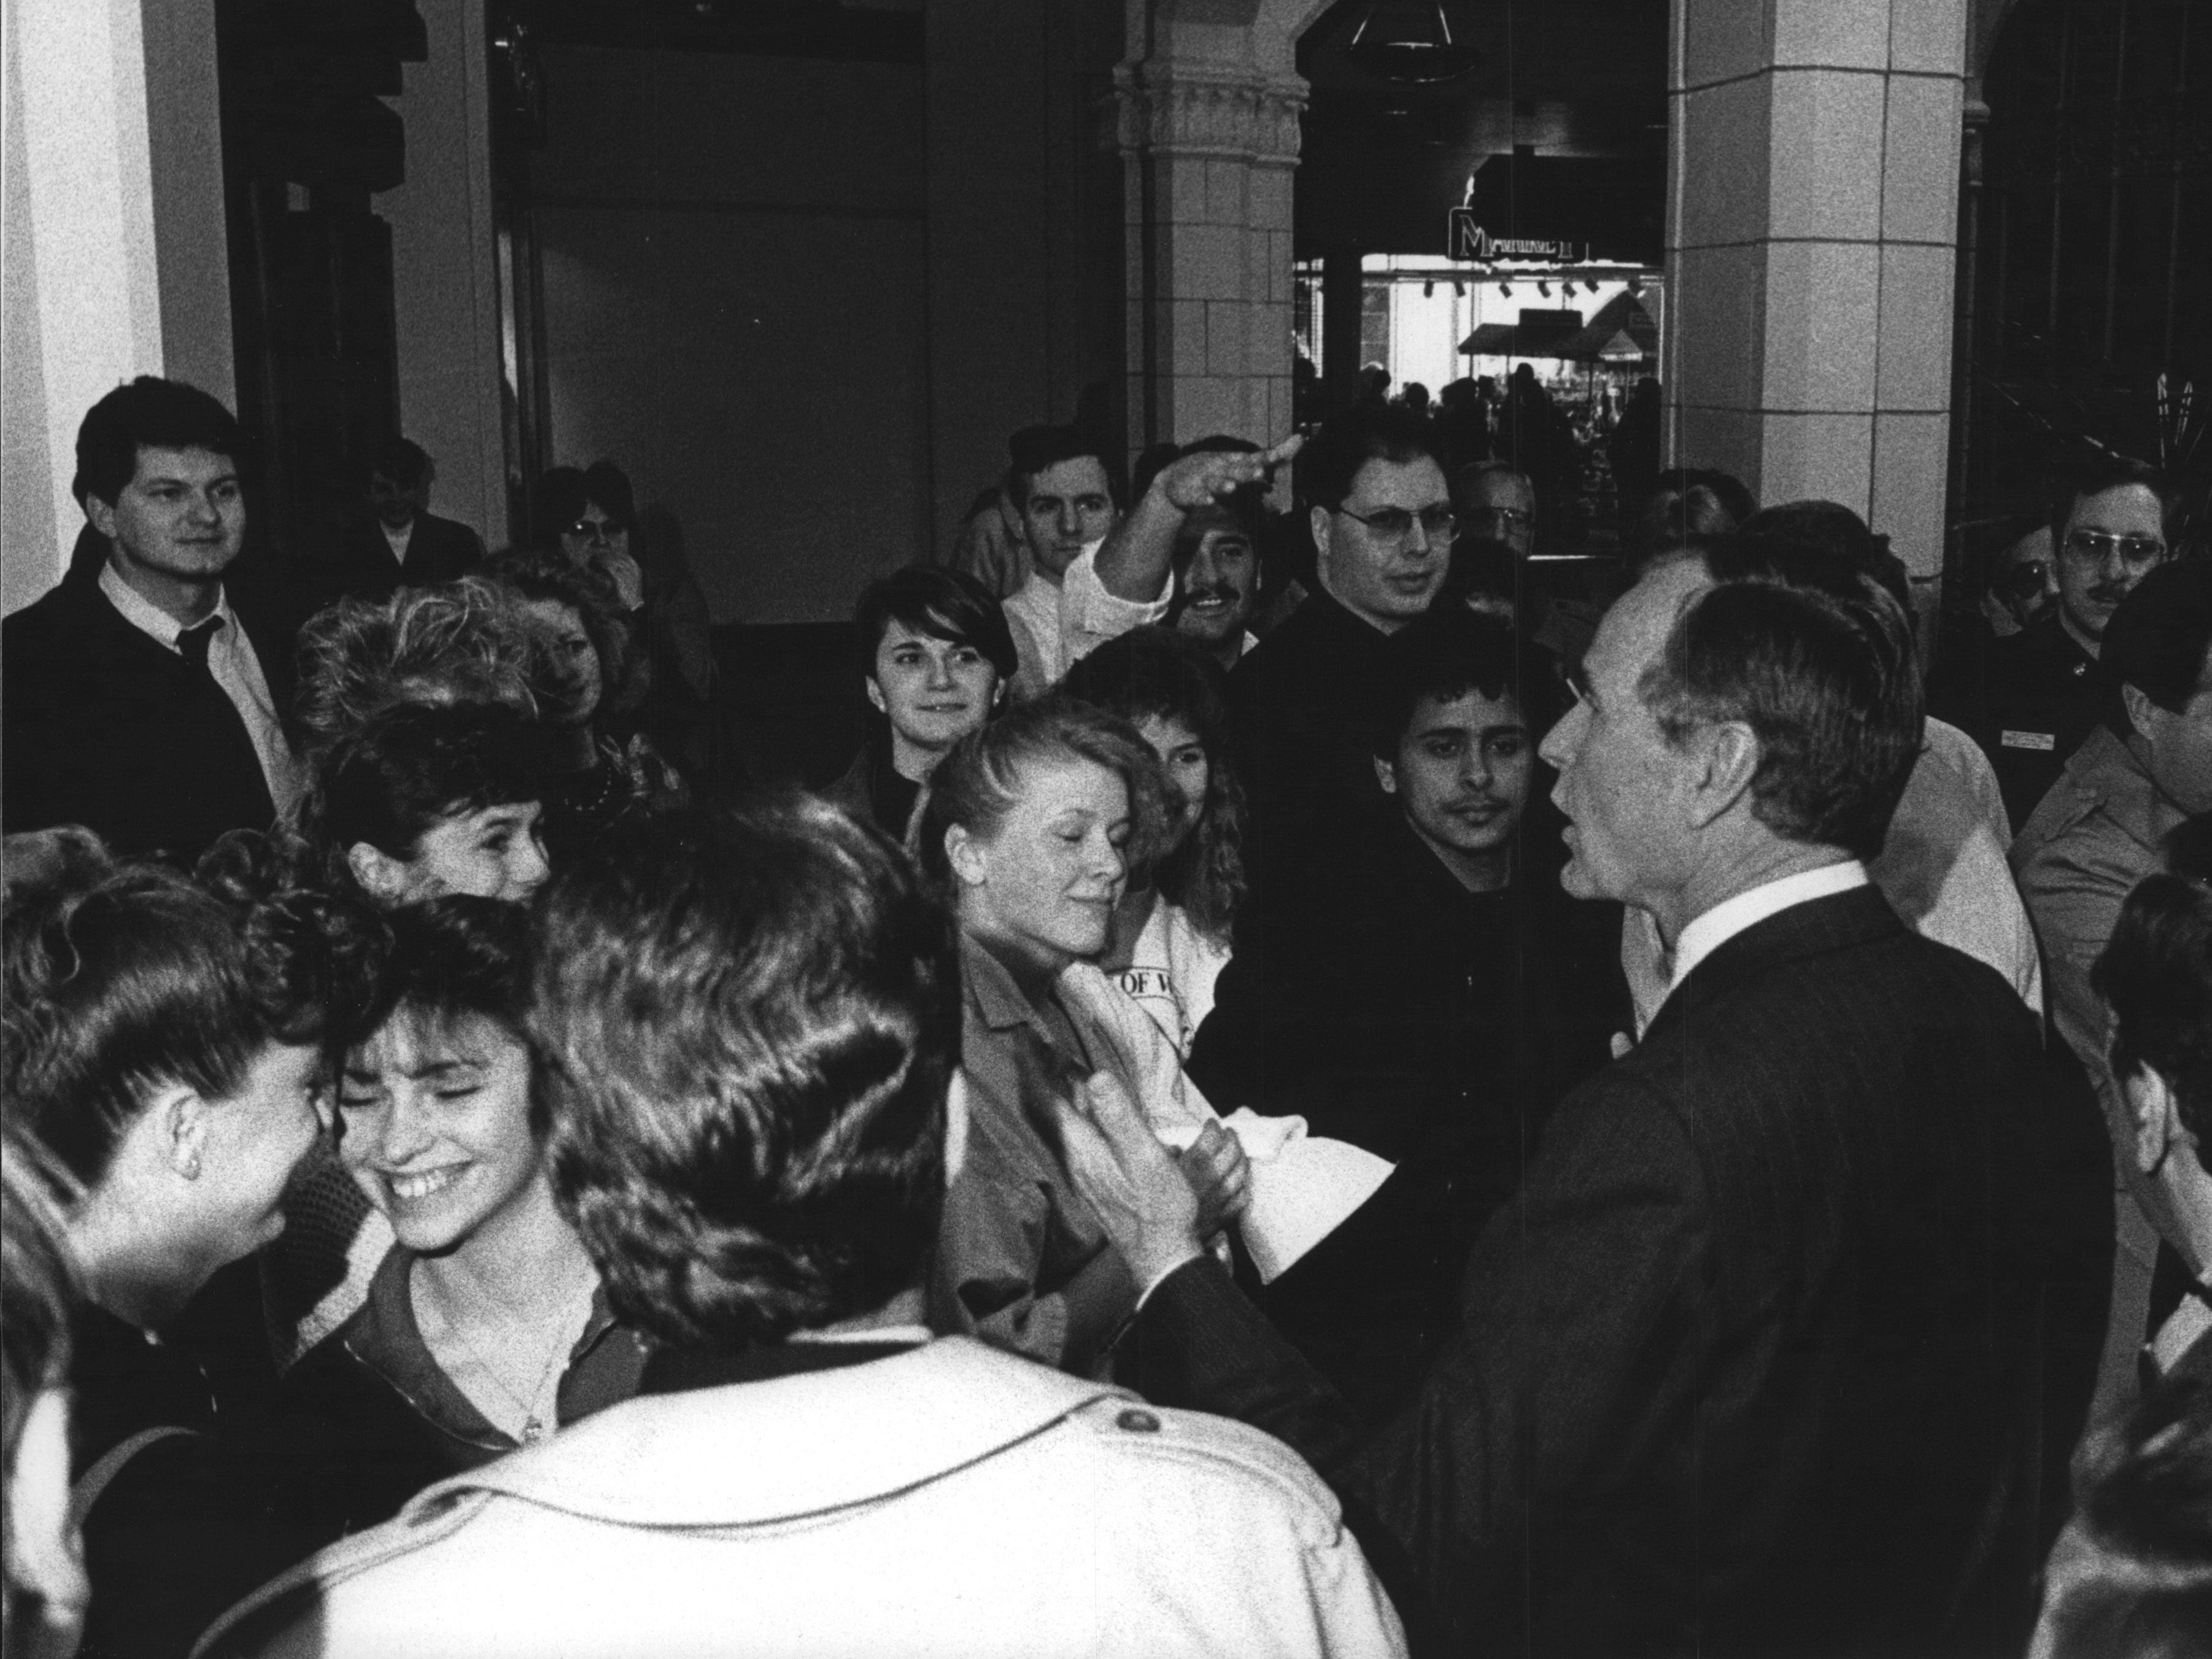 George Bush greet students at Marquette University High School in 1988.